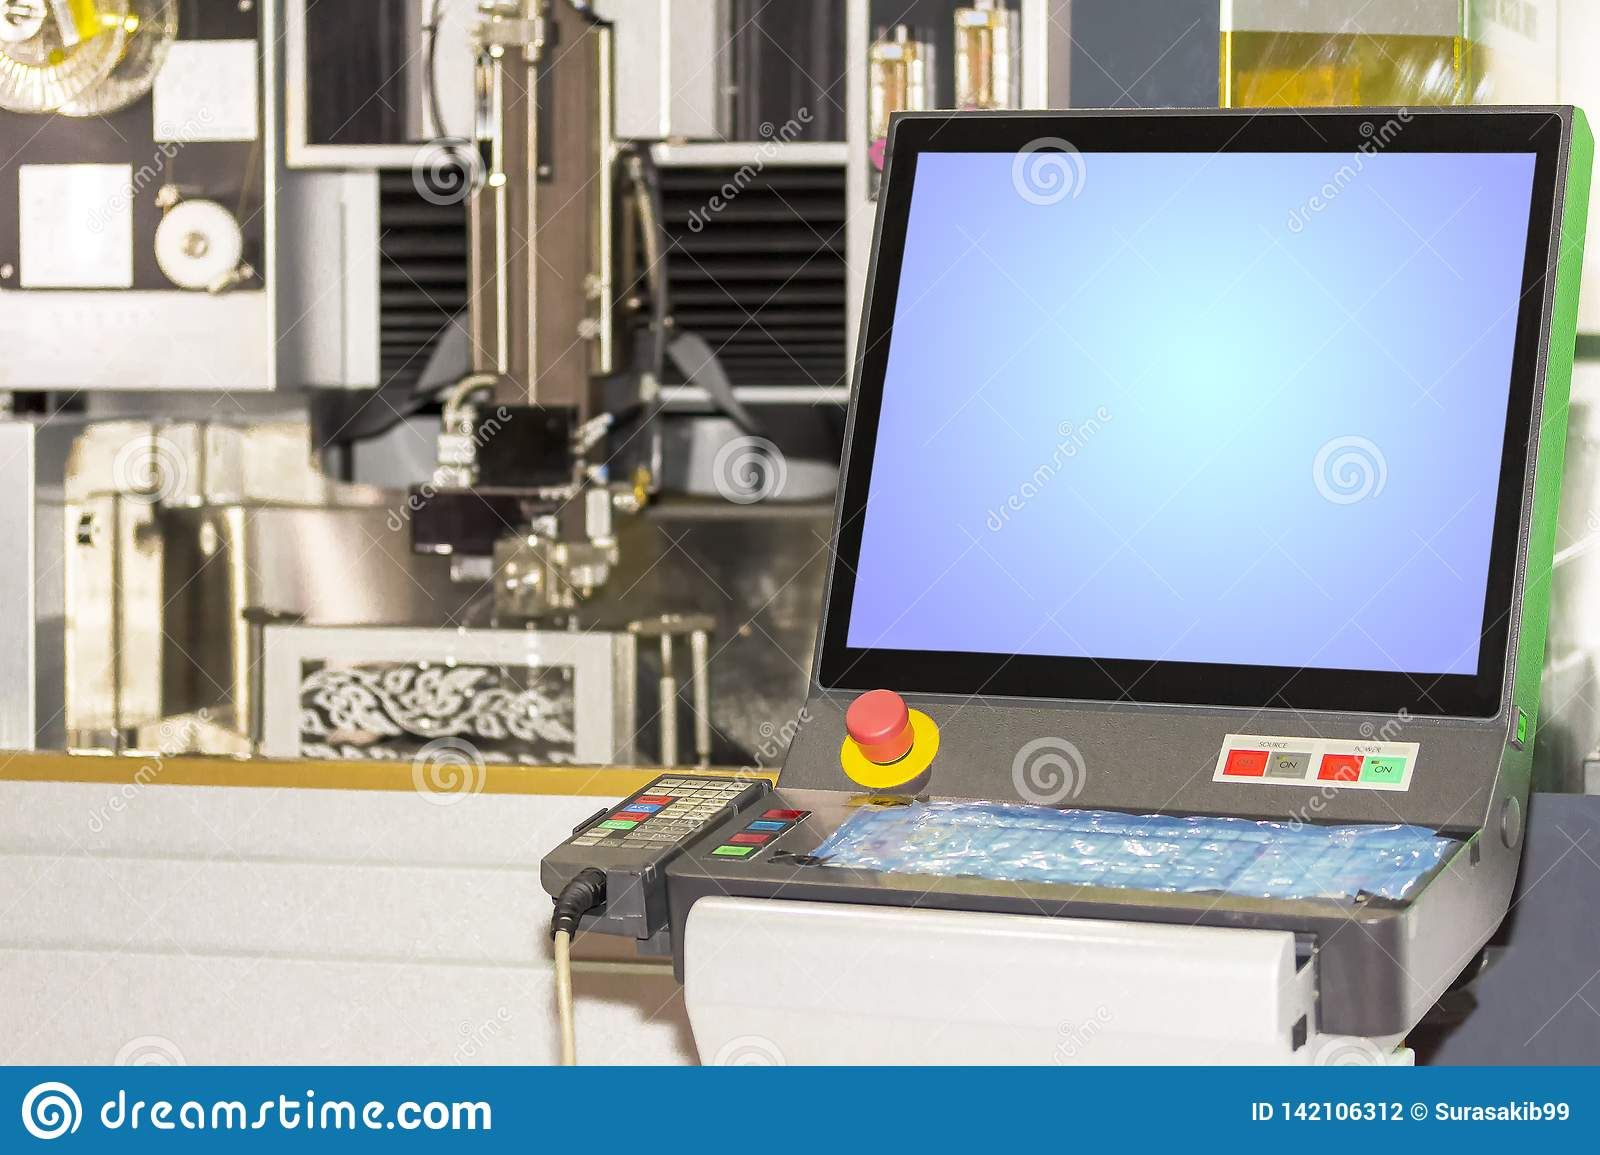 Close up monitor and control panel of high technology and precision mold cutting by cnc wire cut machine at factory